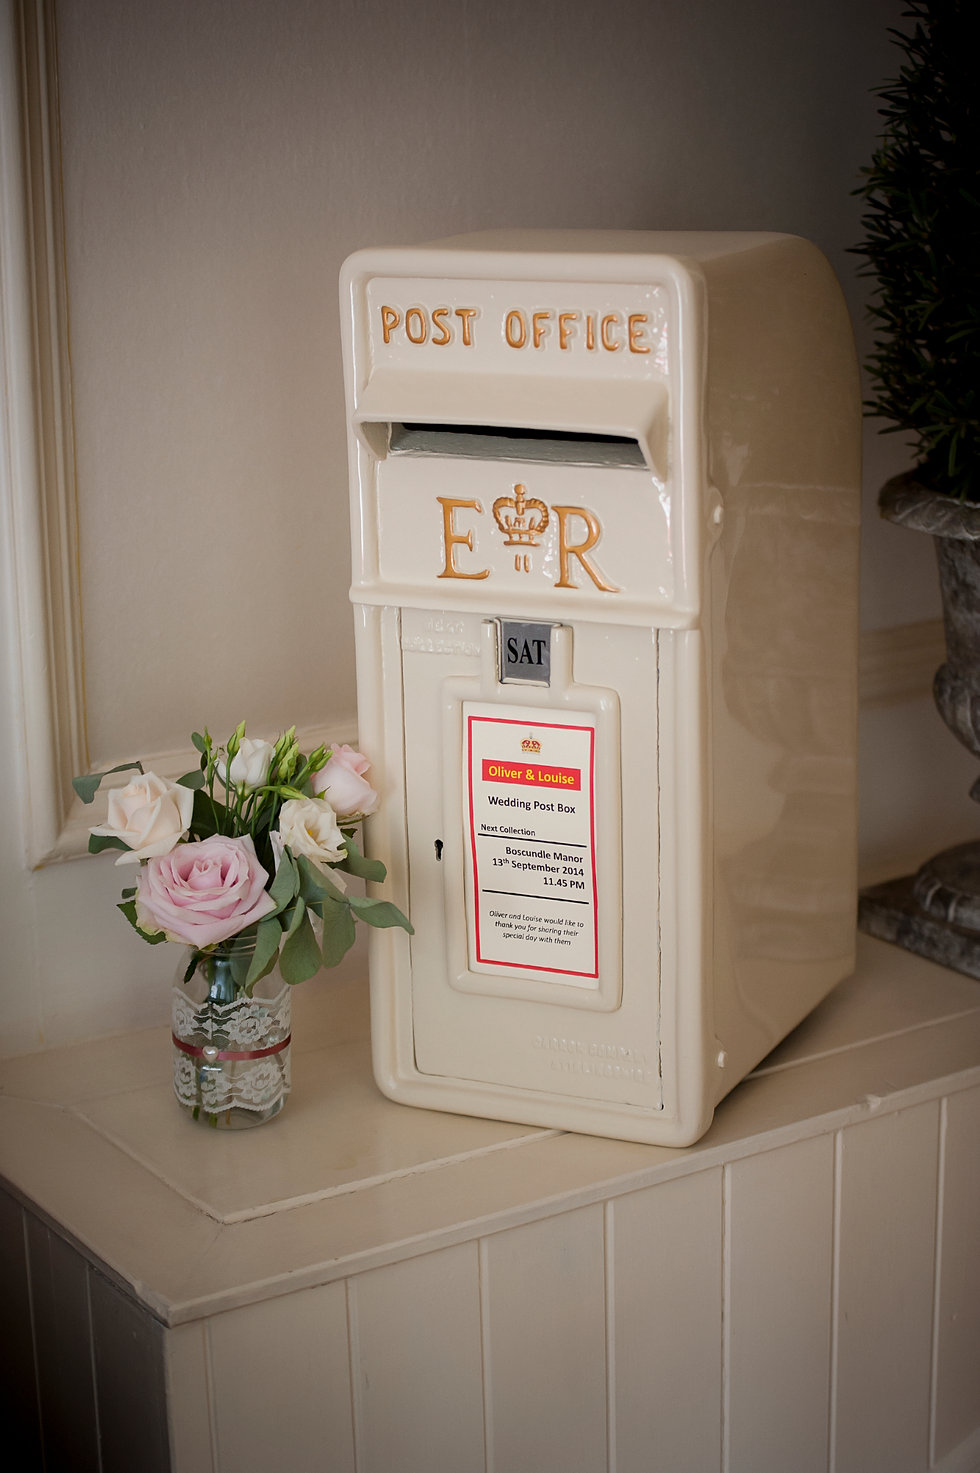 082 Jpg 10923333 873951939343250 6833246616083935999 N Png The Wedding Post Box